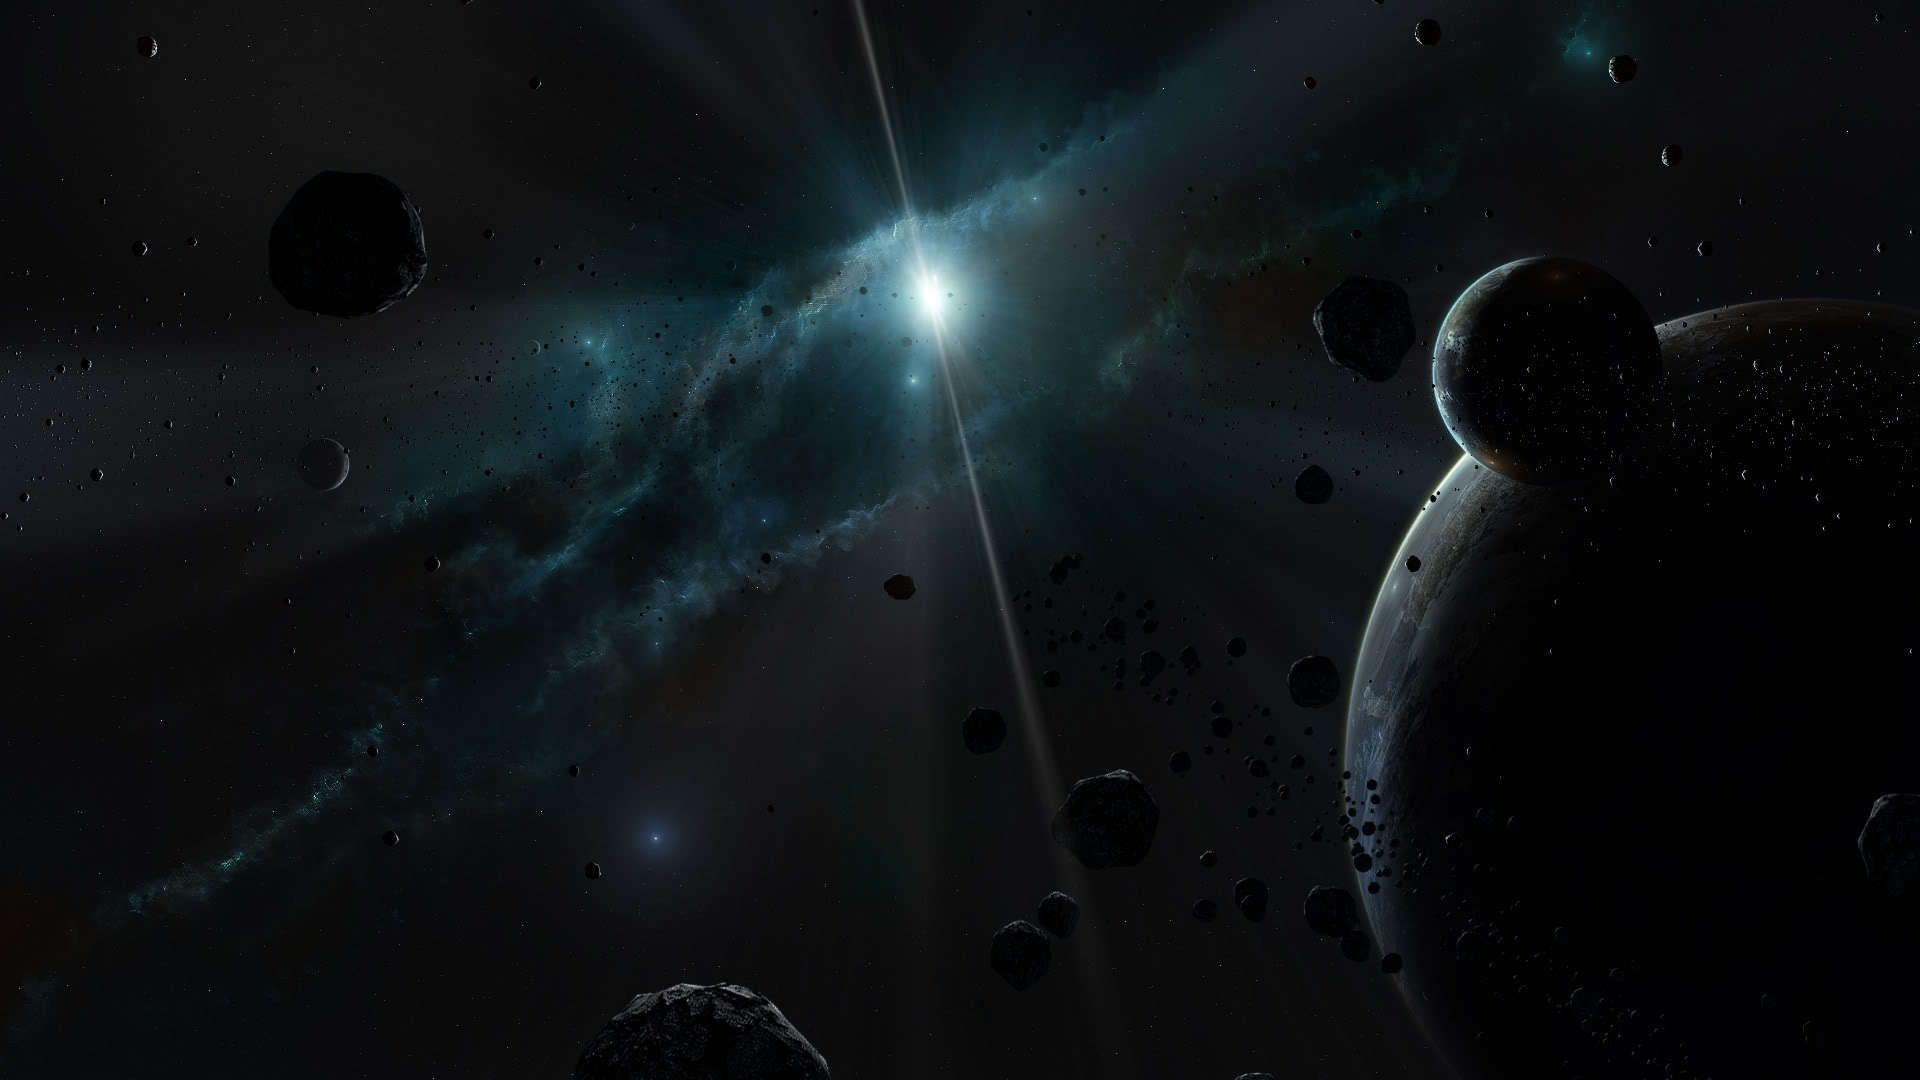 Deep Space Backgrounds – Wallpaper Cave